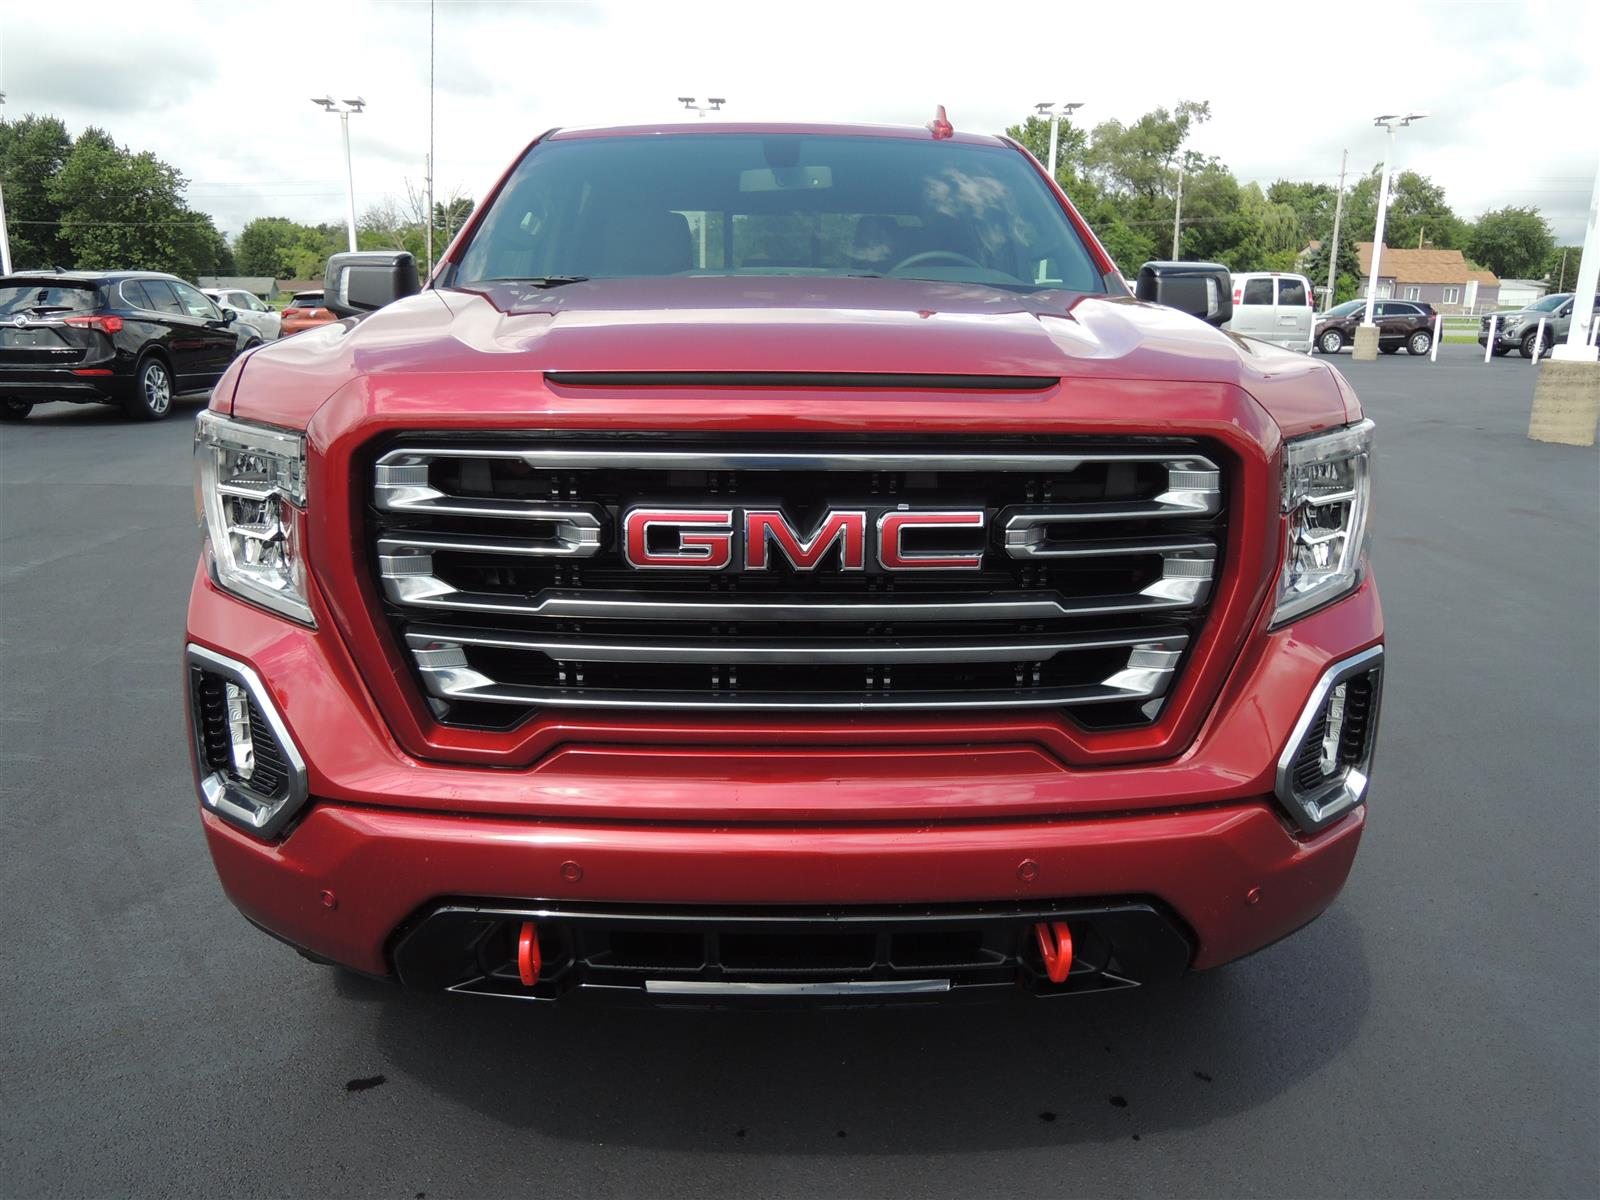 2021 GMC Sierra 1500 Crew Cab 4x4, Pickup #MT11X110 - photo 3